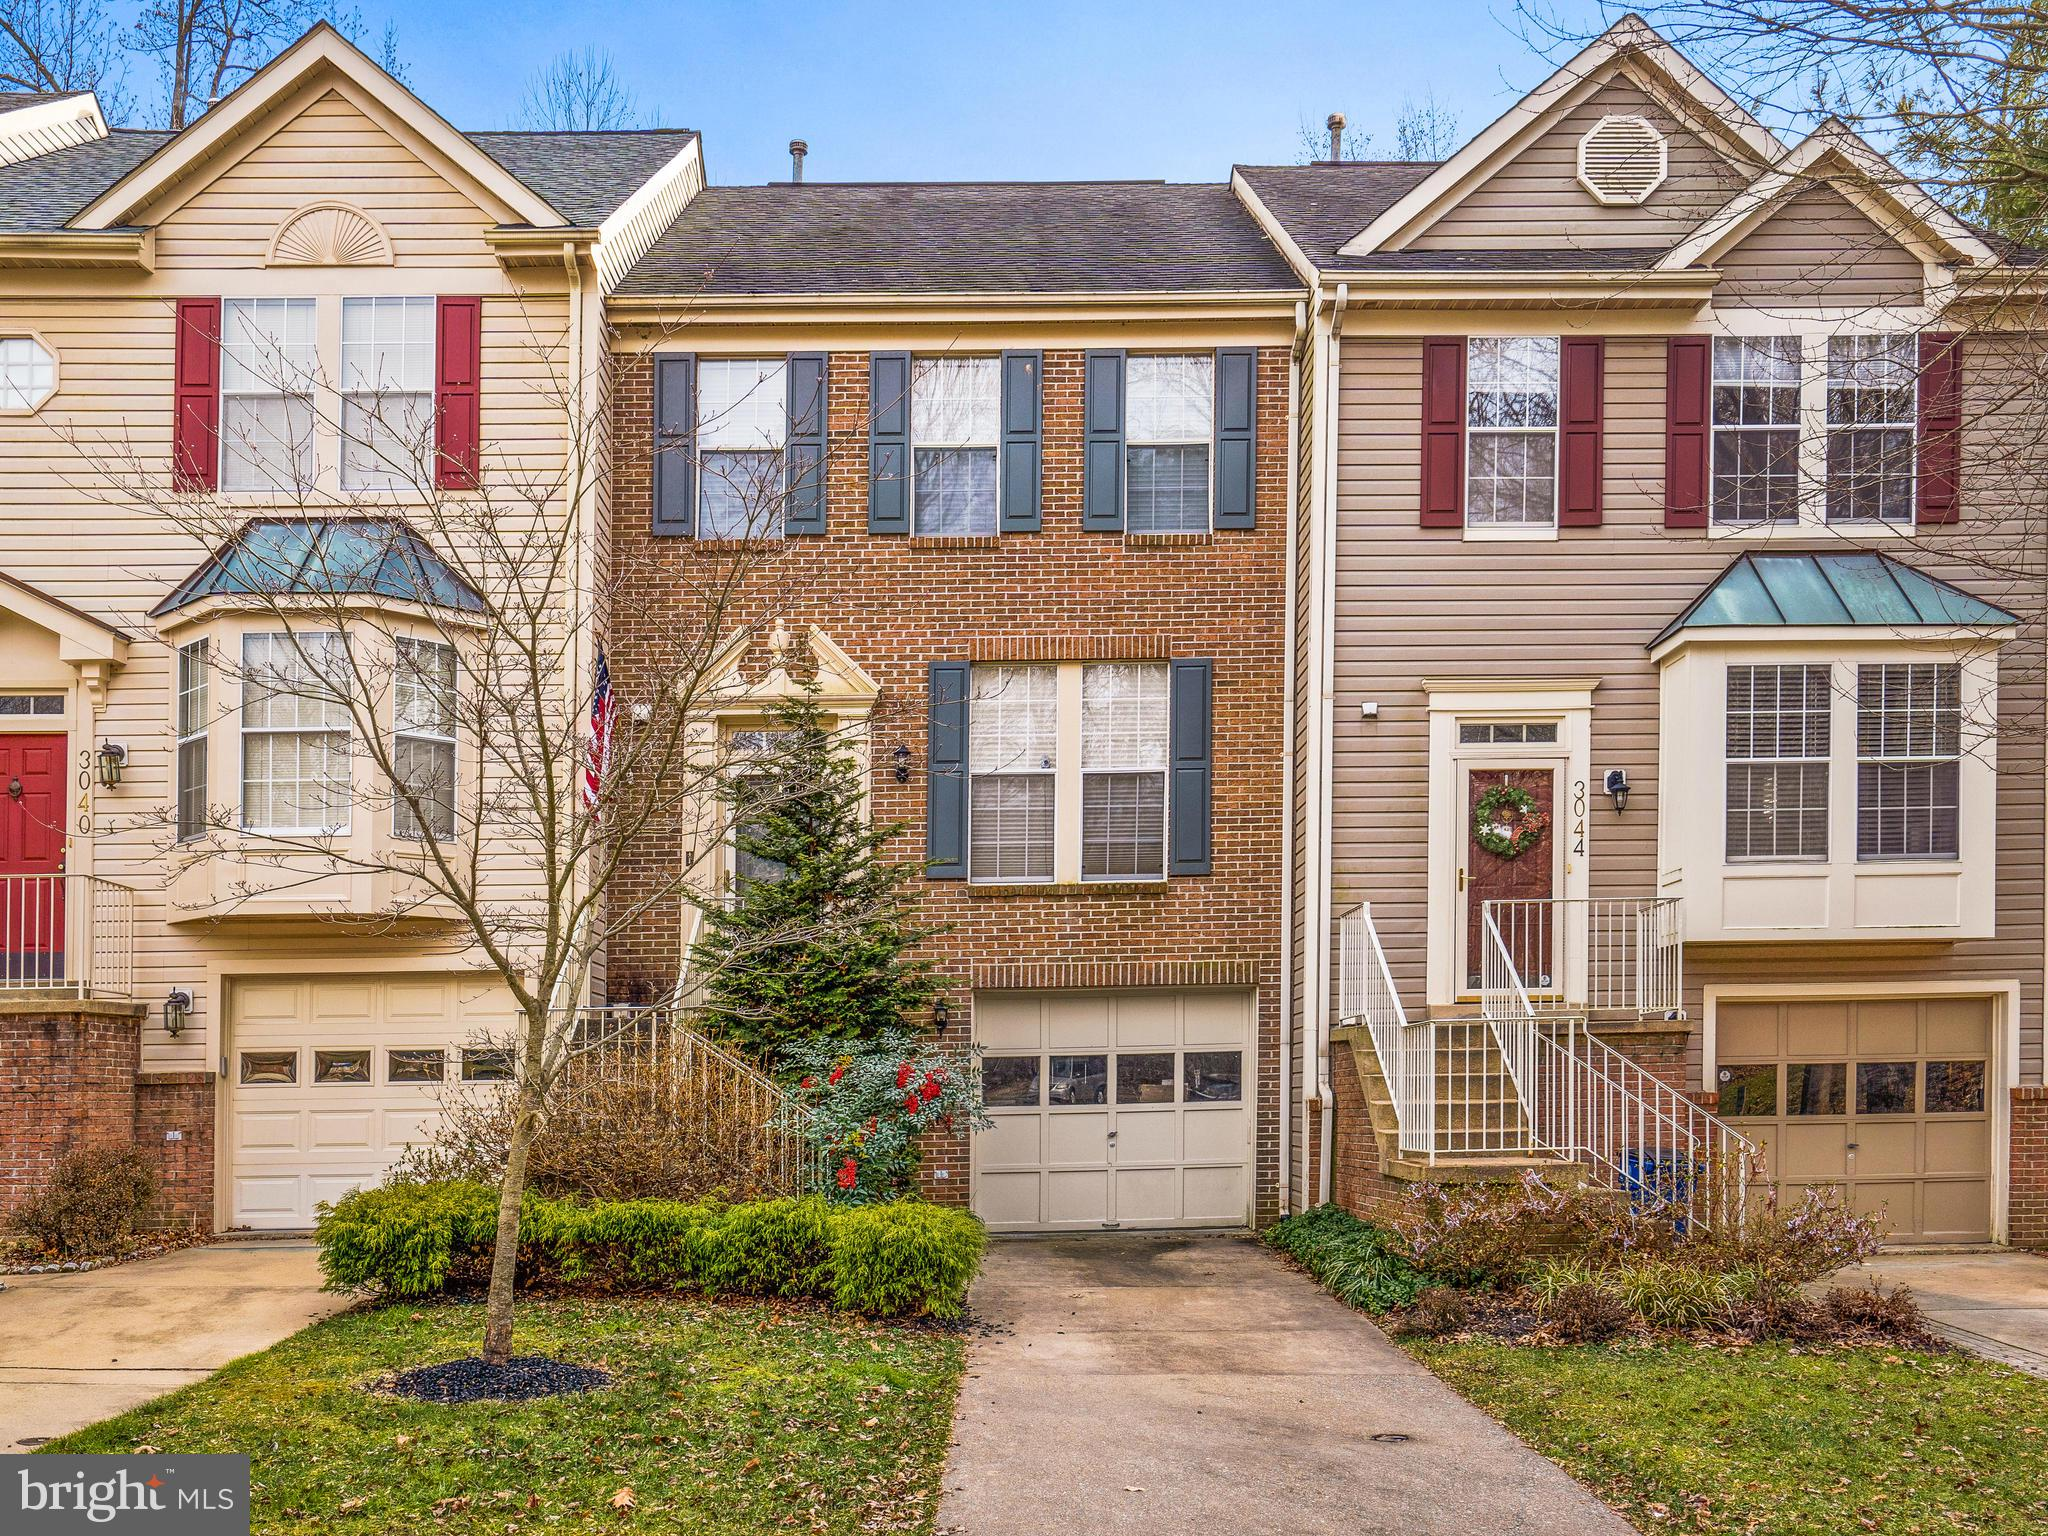 Hurry up downsizers and first-time homebuyers!!!  This stunning townhome won't last!!  Updated kitchen and baths!  Kitchen and dining area open up to a nice deck overlooking trees and a peaceful scenery. Lower level features a recreational room and garage access. Open floor plan and spacious rooms make this home sweet!  One of the best features is all the extra parking at the end of a quiet cul-de-sac and the pool is walking distance!  This neighborhood is in the heart of Olney, you can walk to the shopping center and Starbucks!! It's the perfect townhome in the perfect neighborhood at the perfect price!!